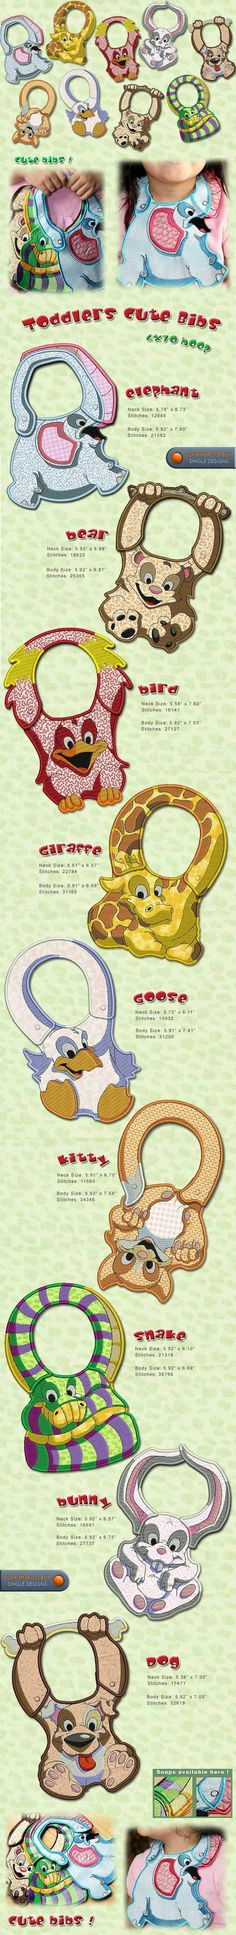 Baby Embroidery, BIBS Designs Free Embroidery Design Patterns Applique